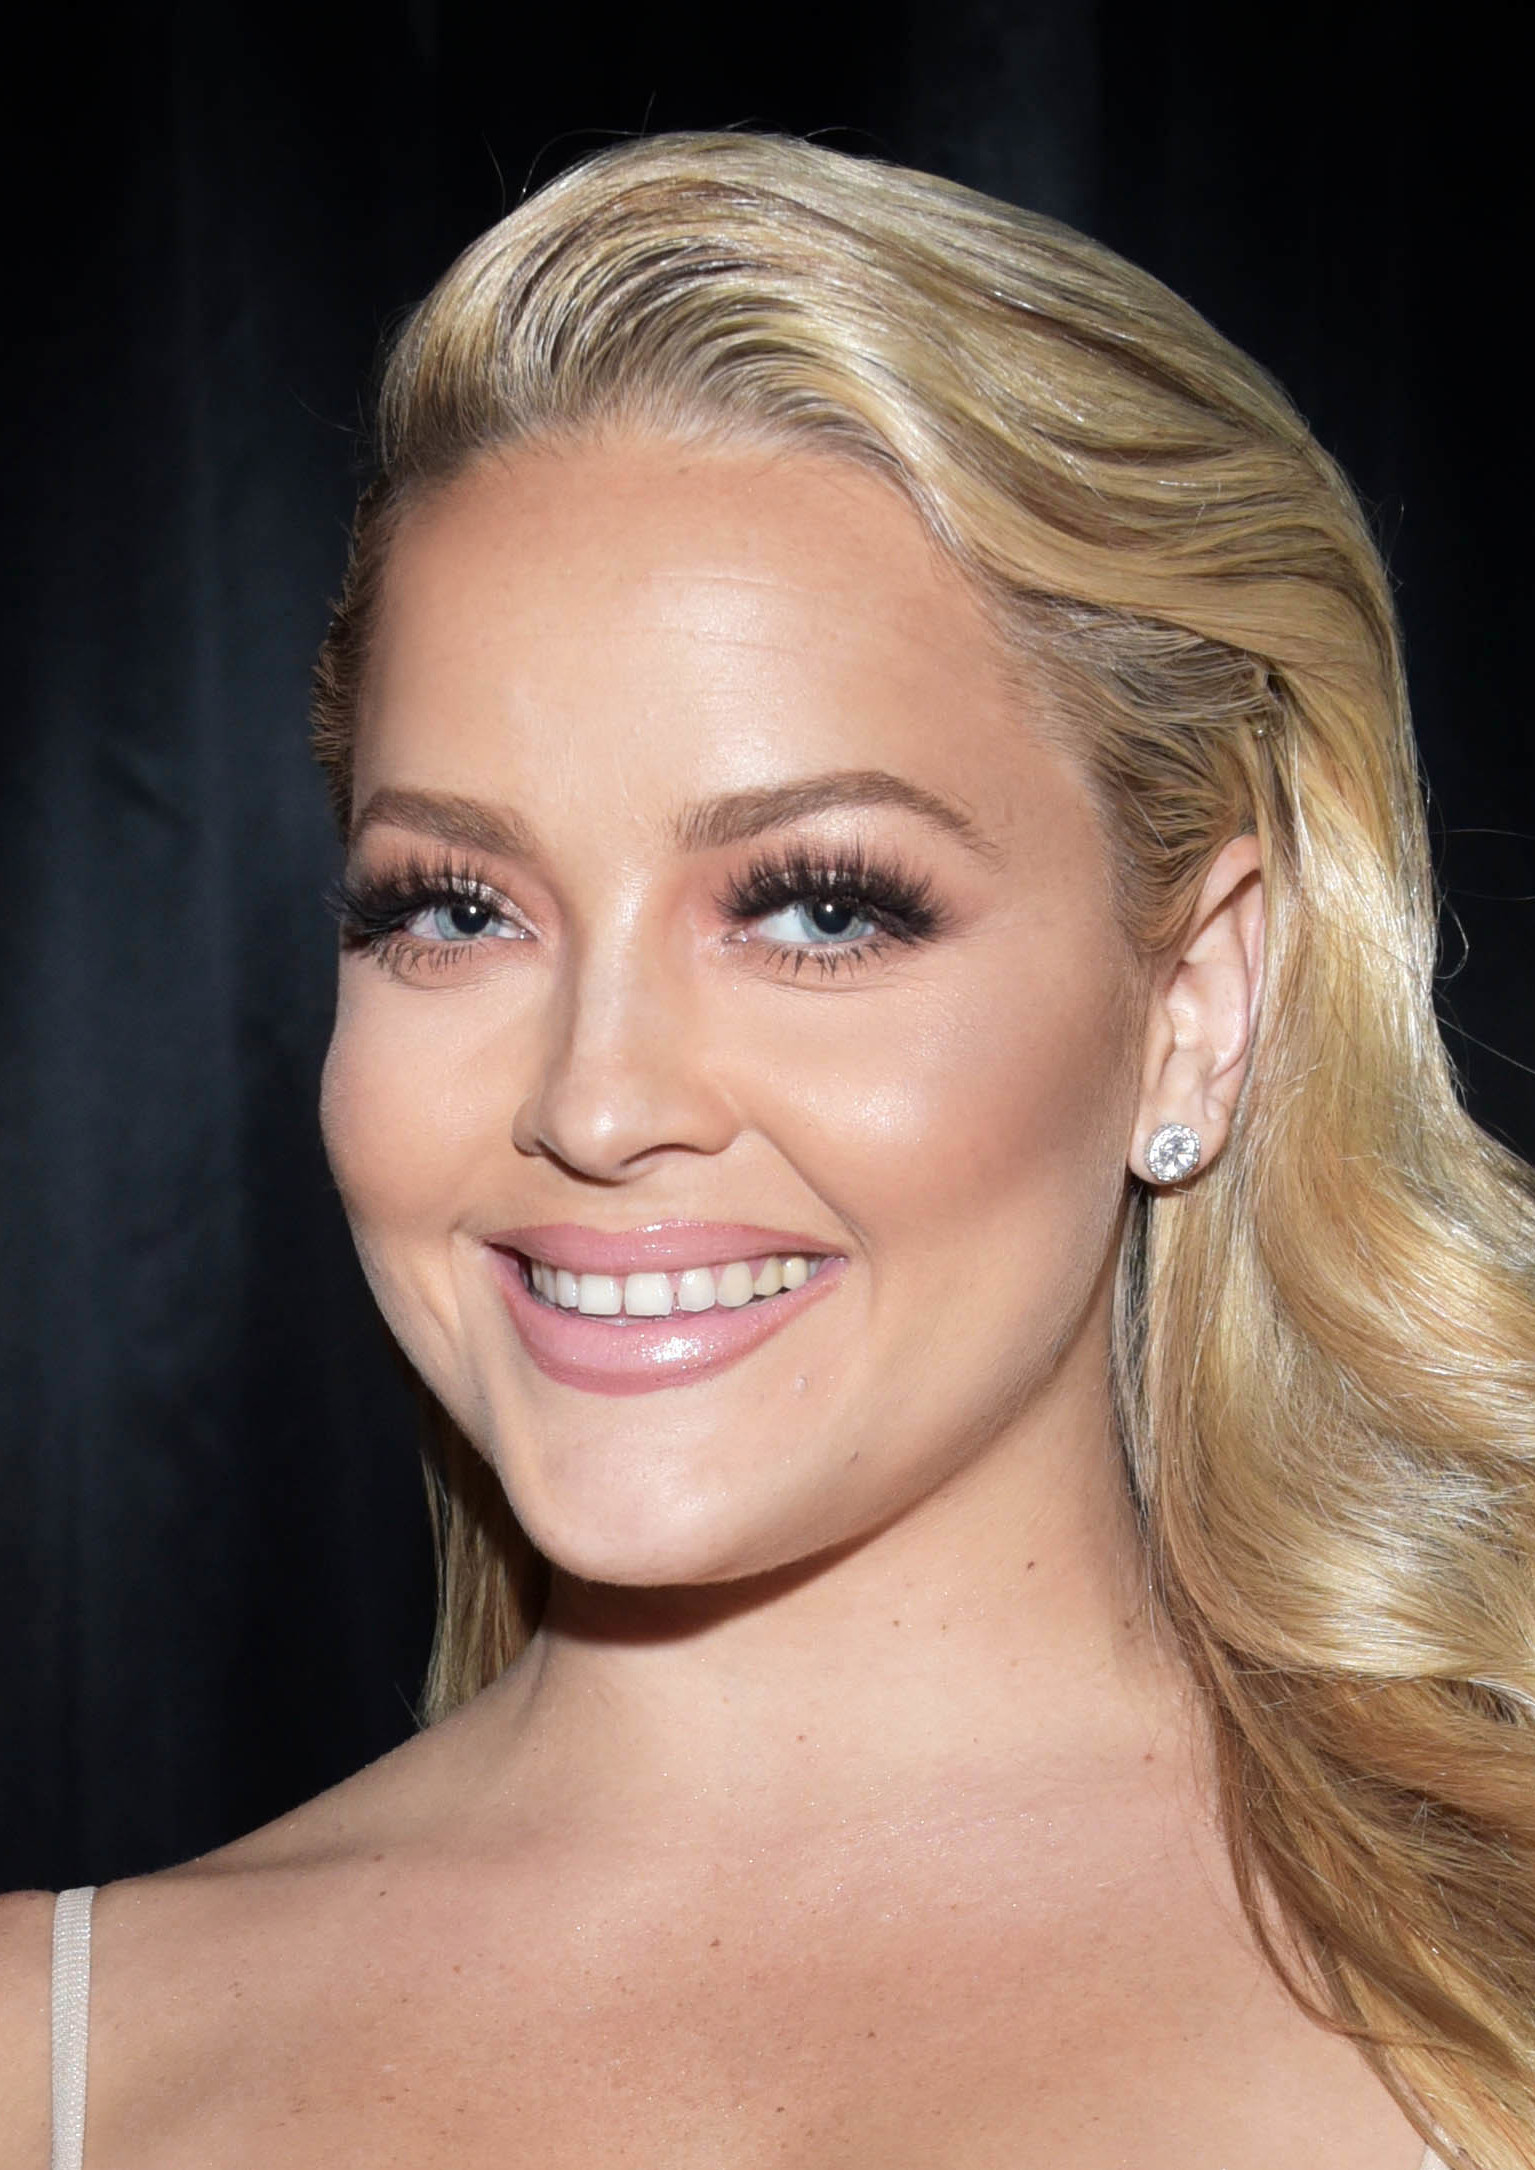 pornstar alexis texas interview